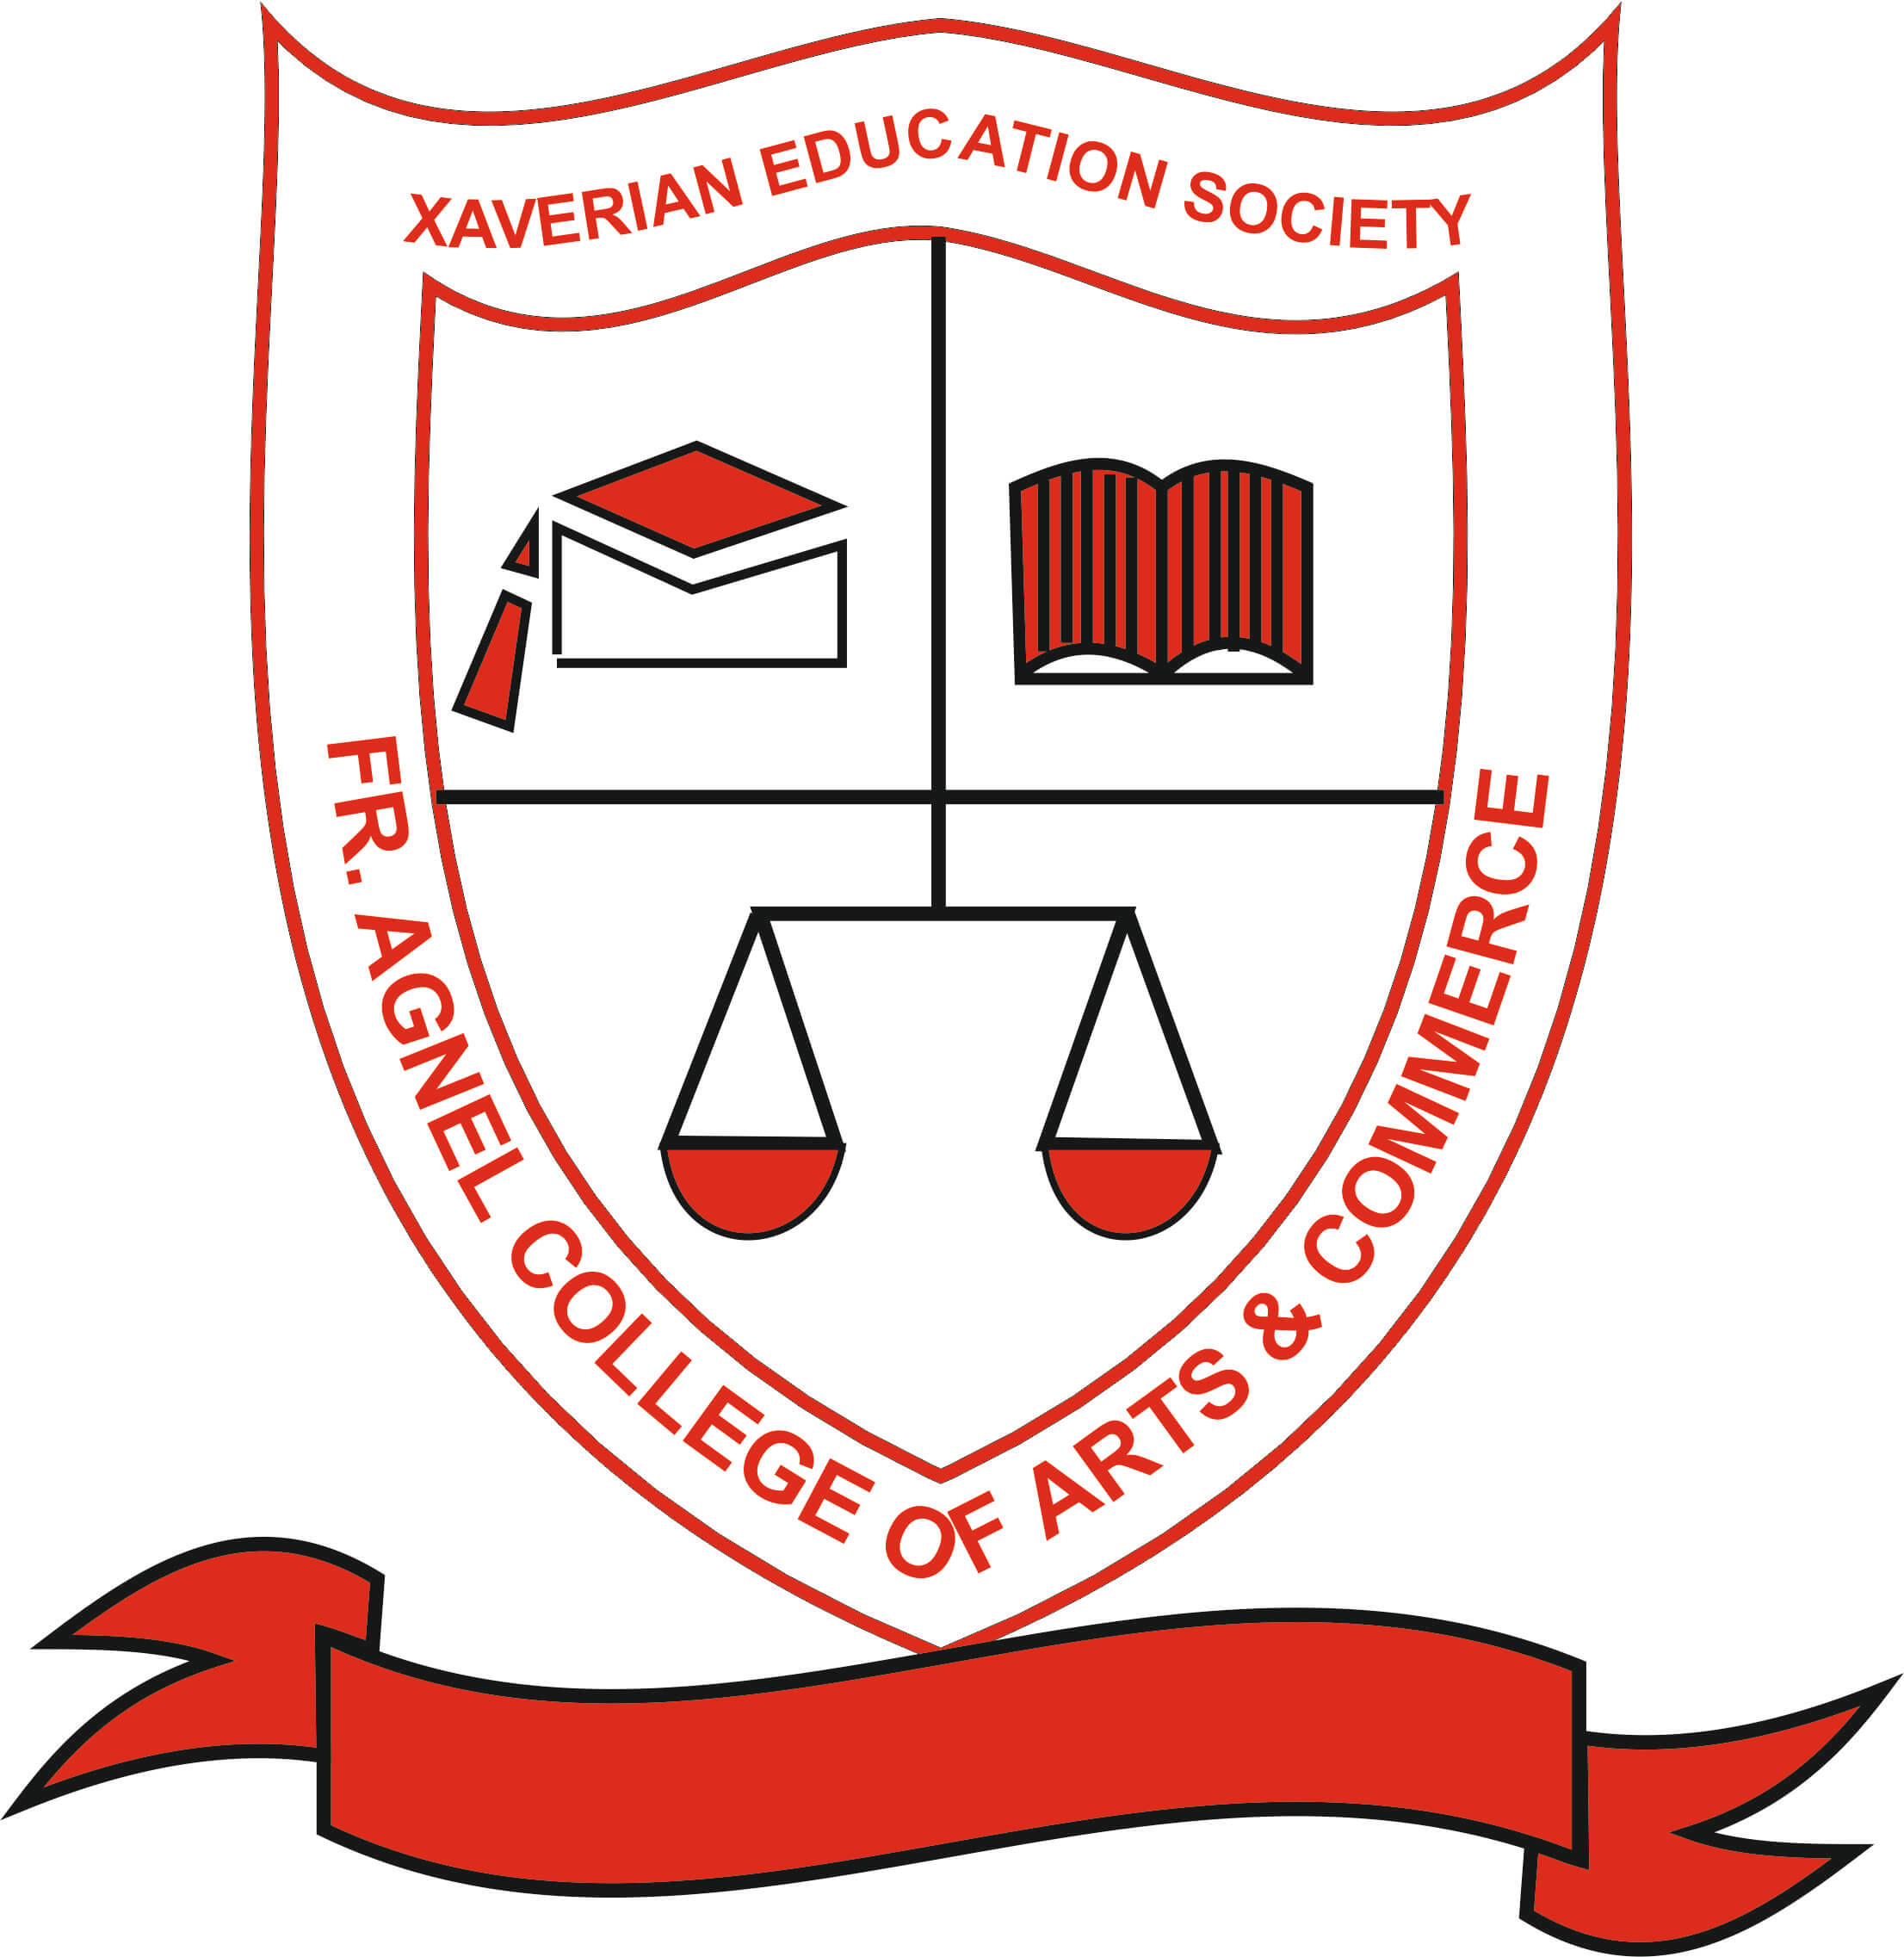 Fr. Agnel College of Arts and Commerce